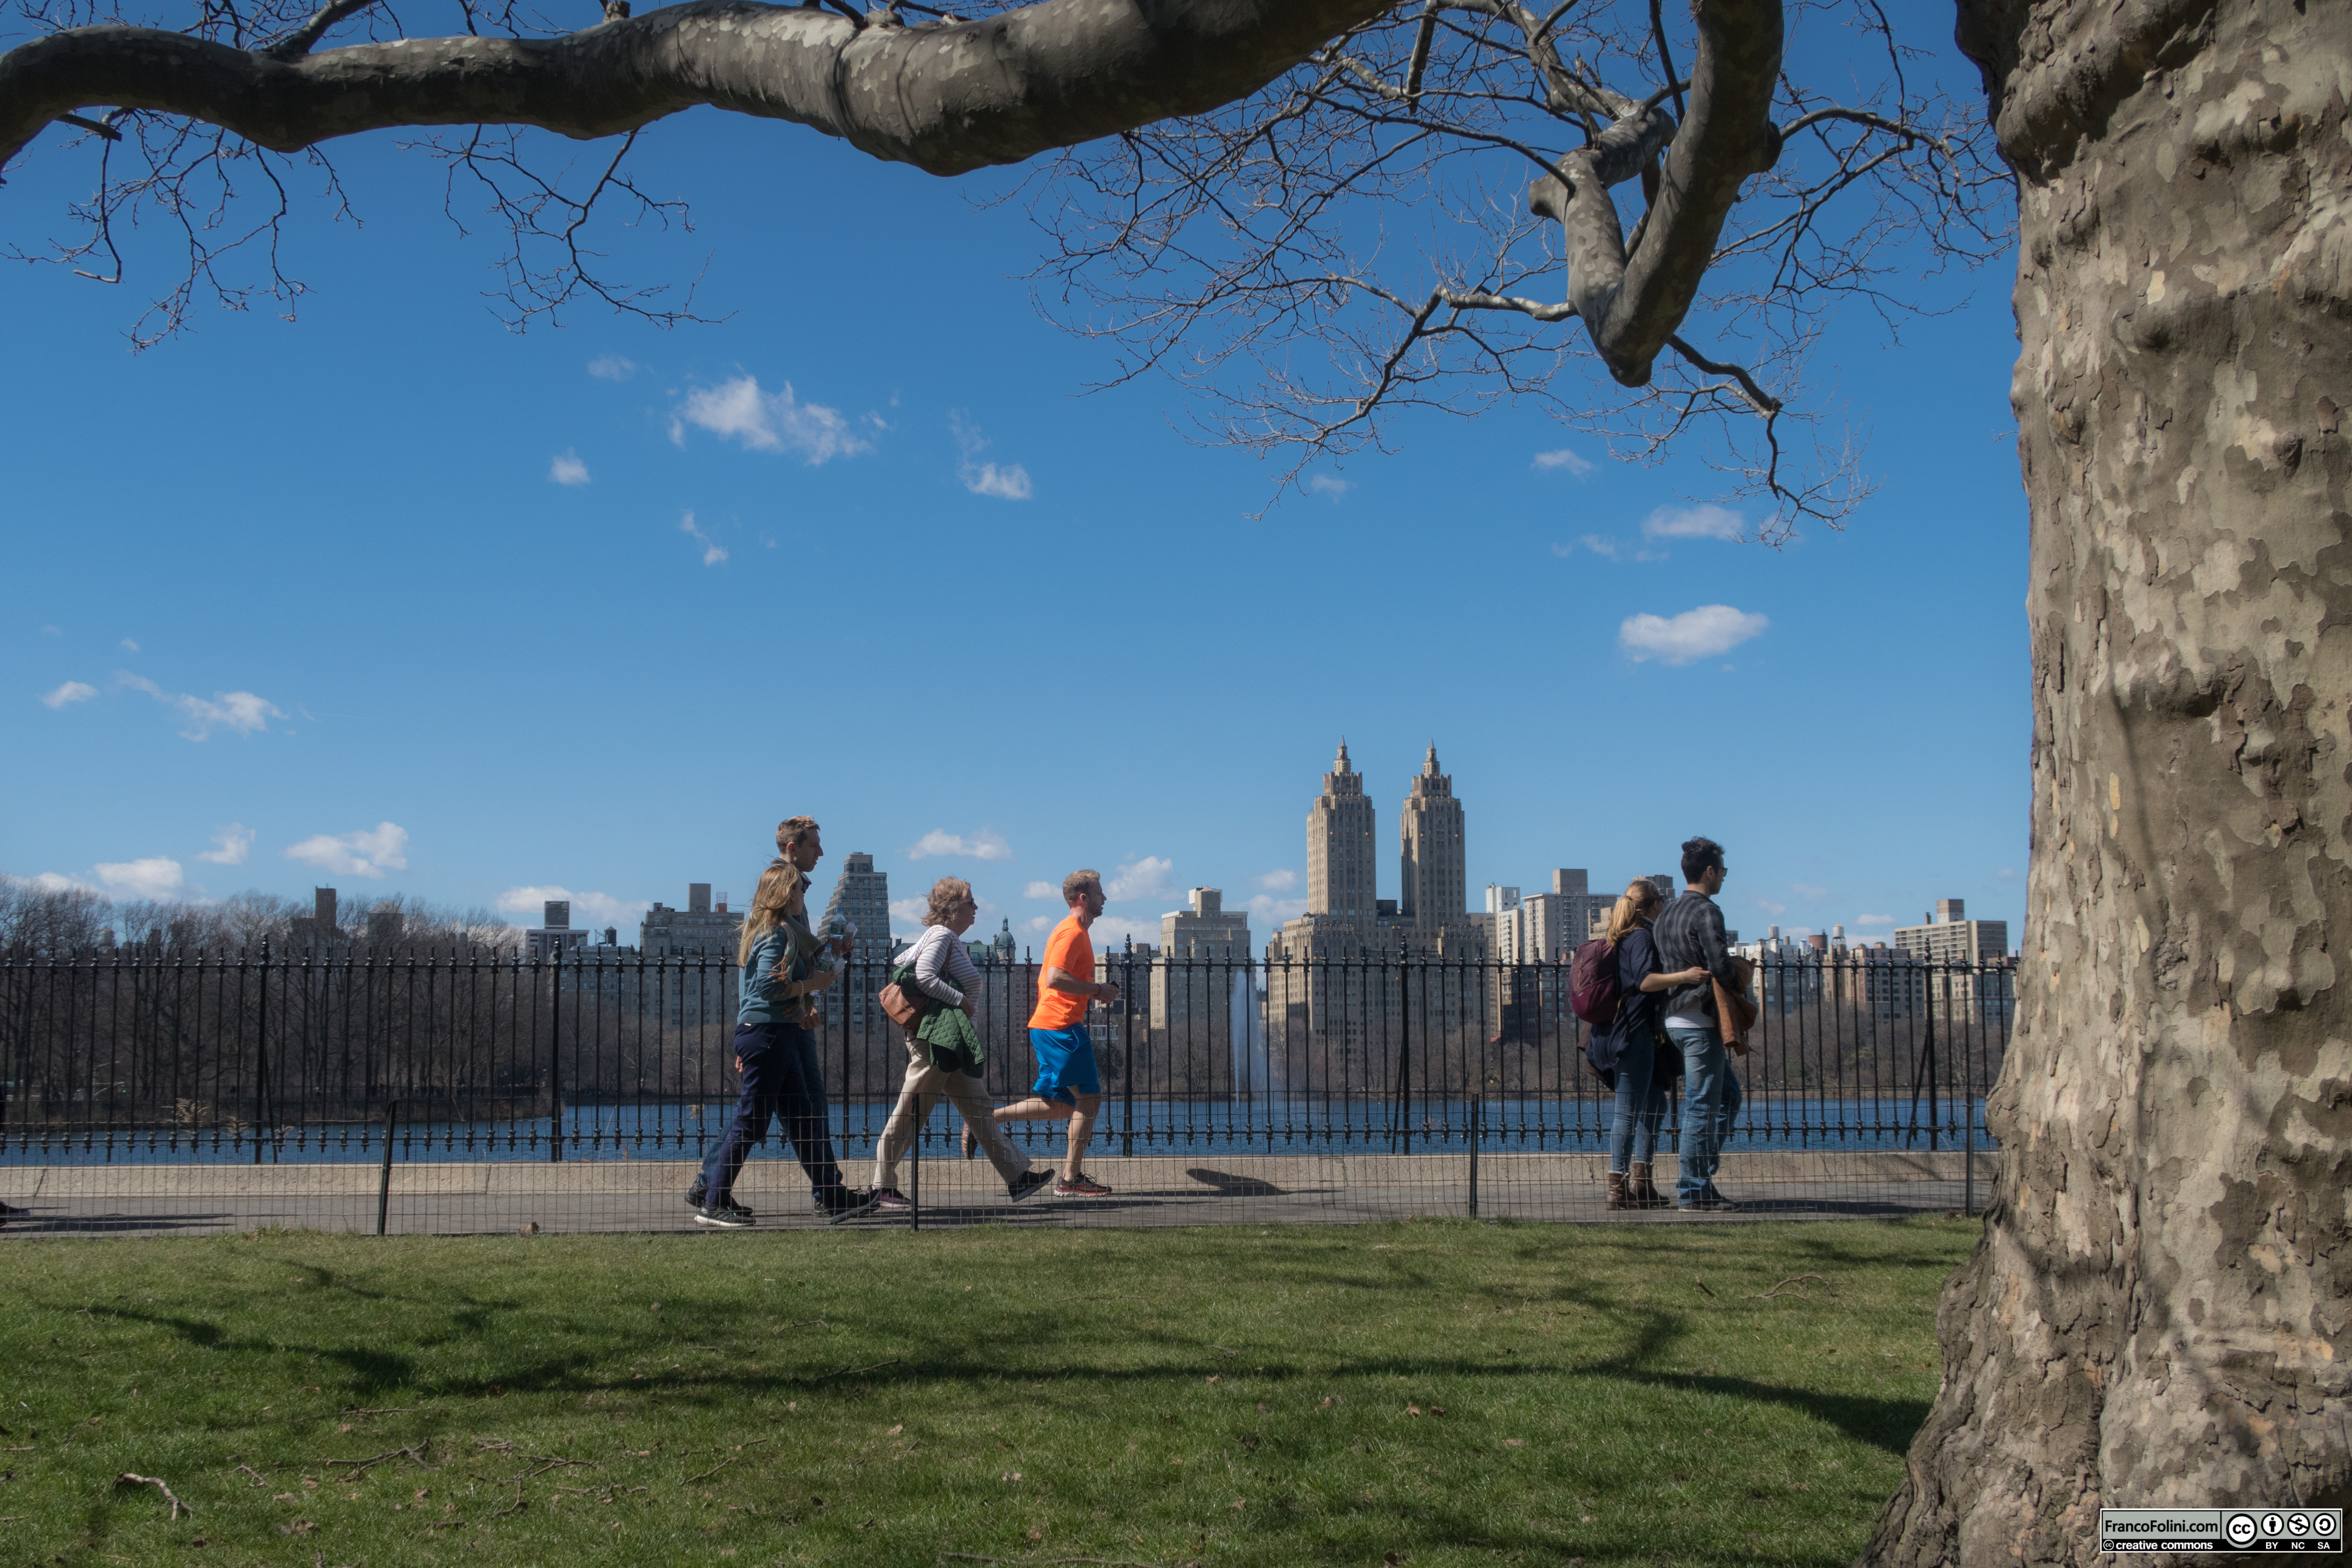 Tourists and locals in Central Park, NYC